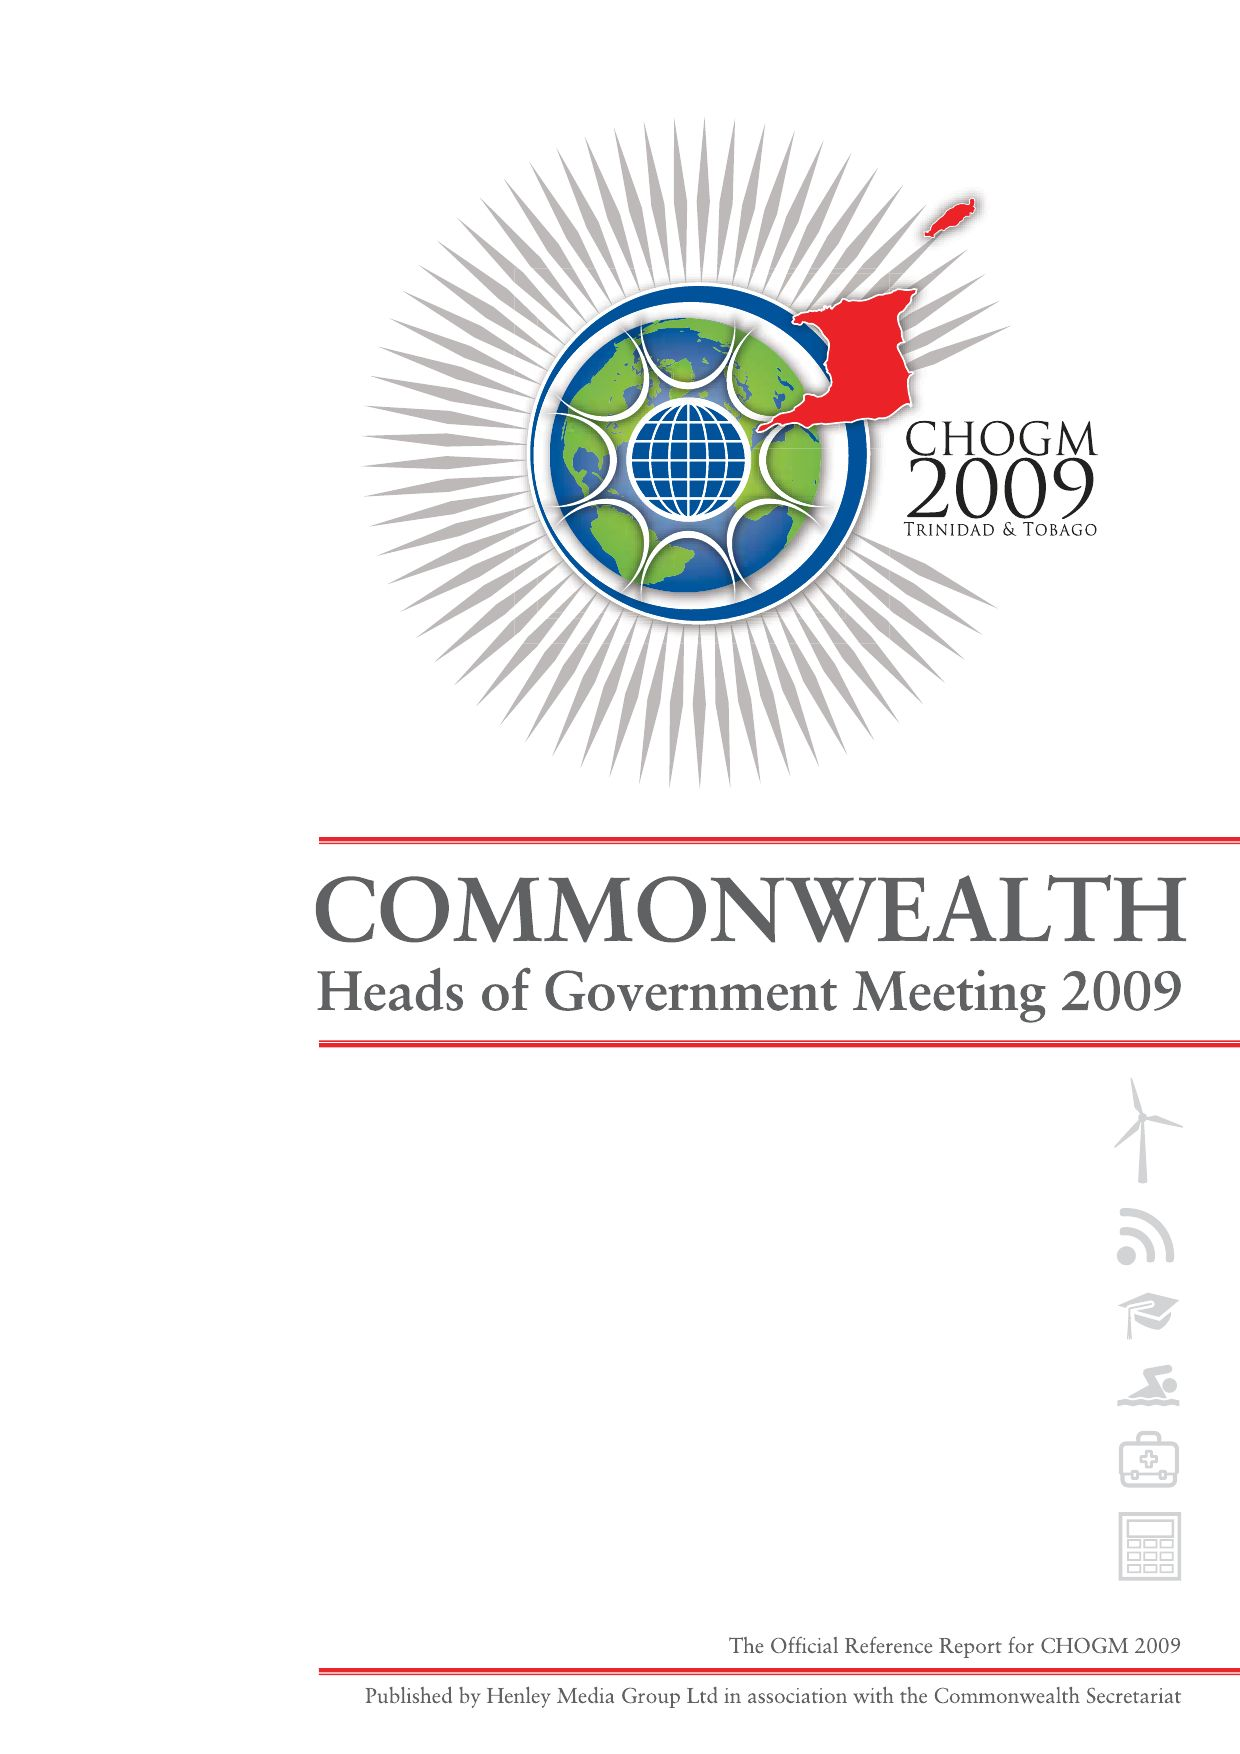 http://www.commonwealthministers.com/elib/ebooks/CHOGM2009 by Henley Media  Group - issuu